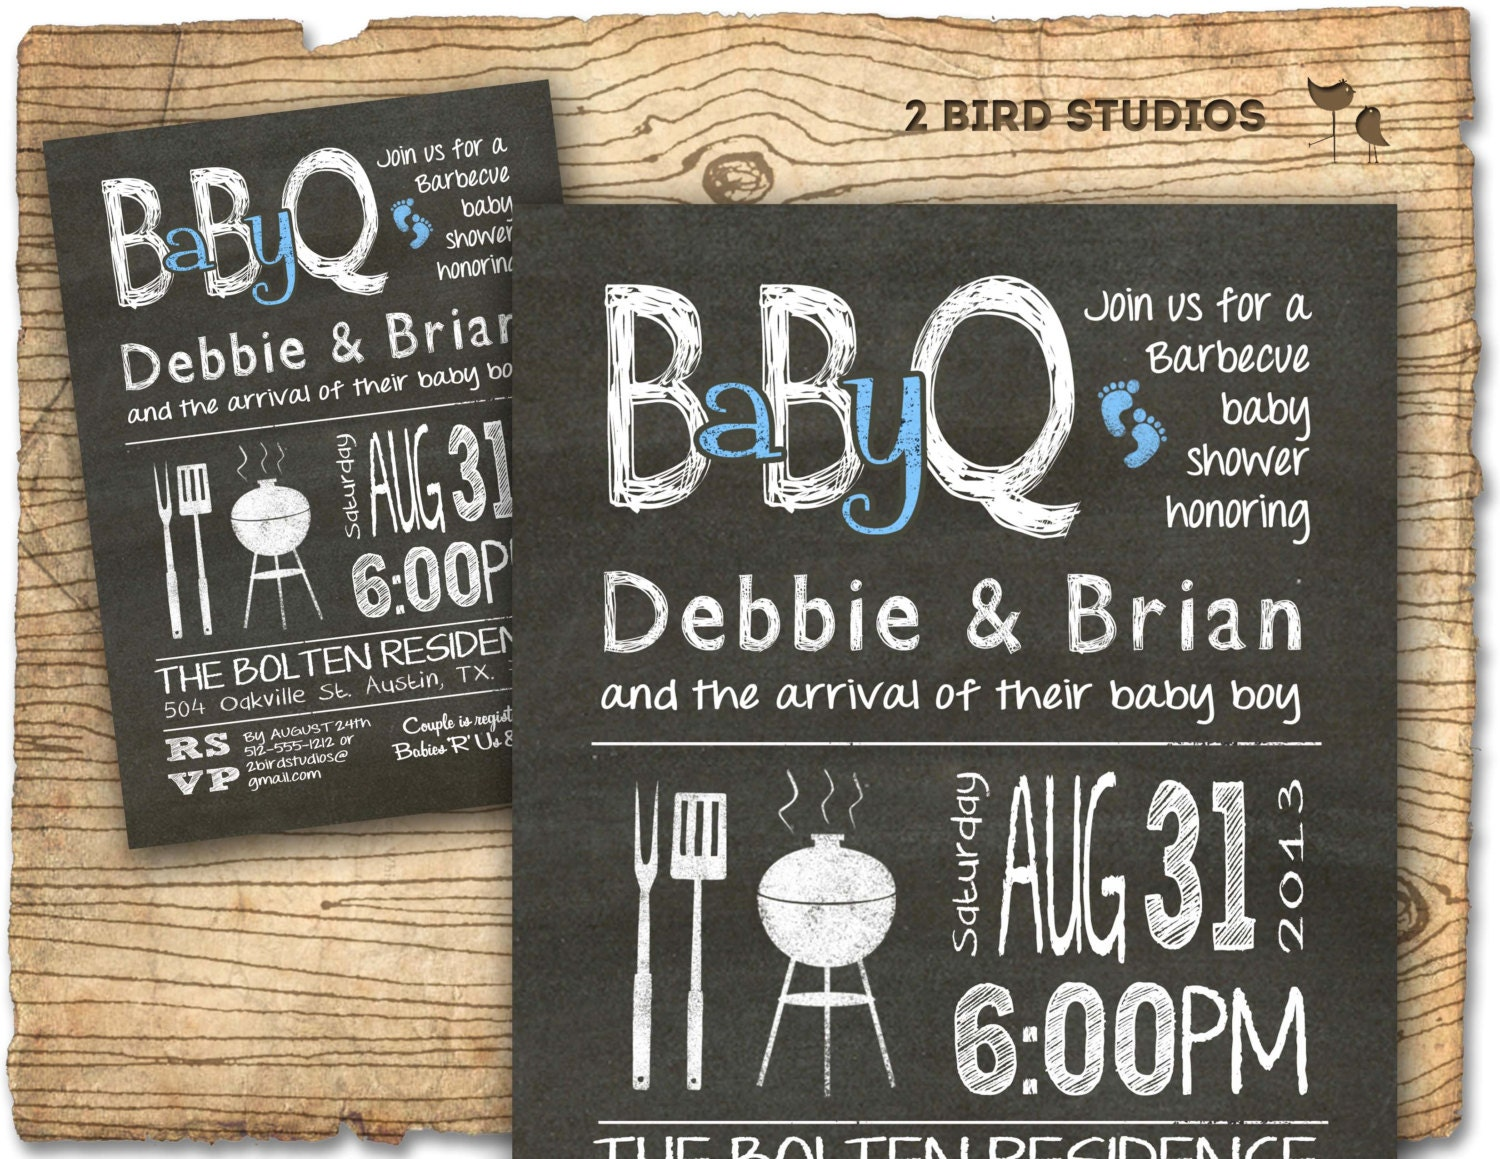 Co Ed Baby Shower Invitations with great invitation ideas